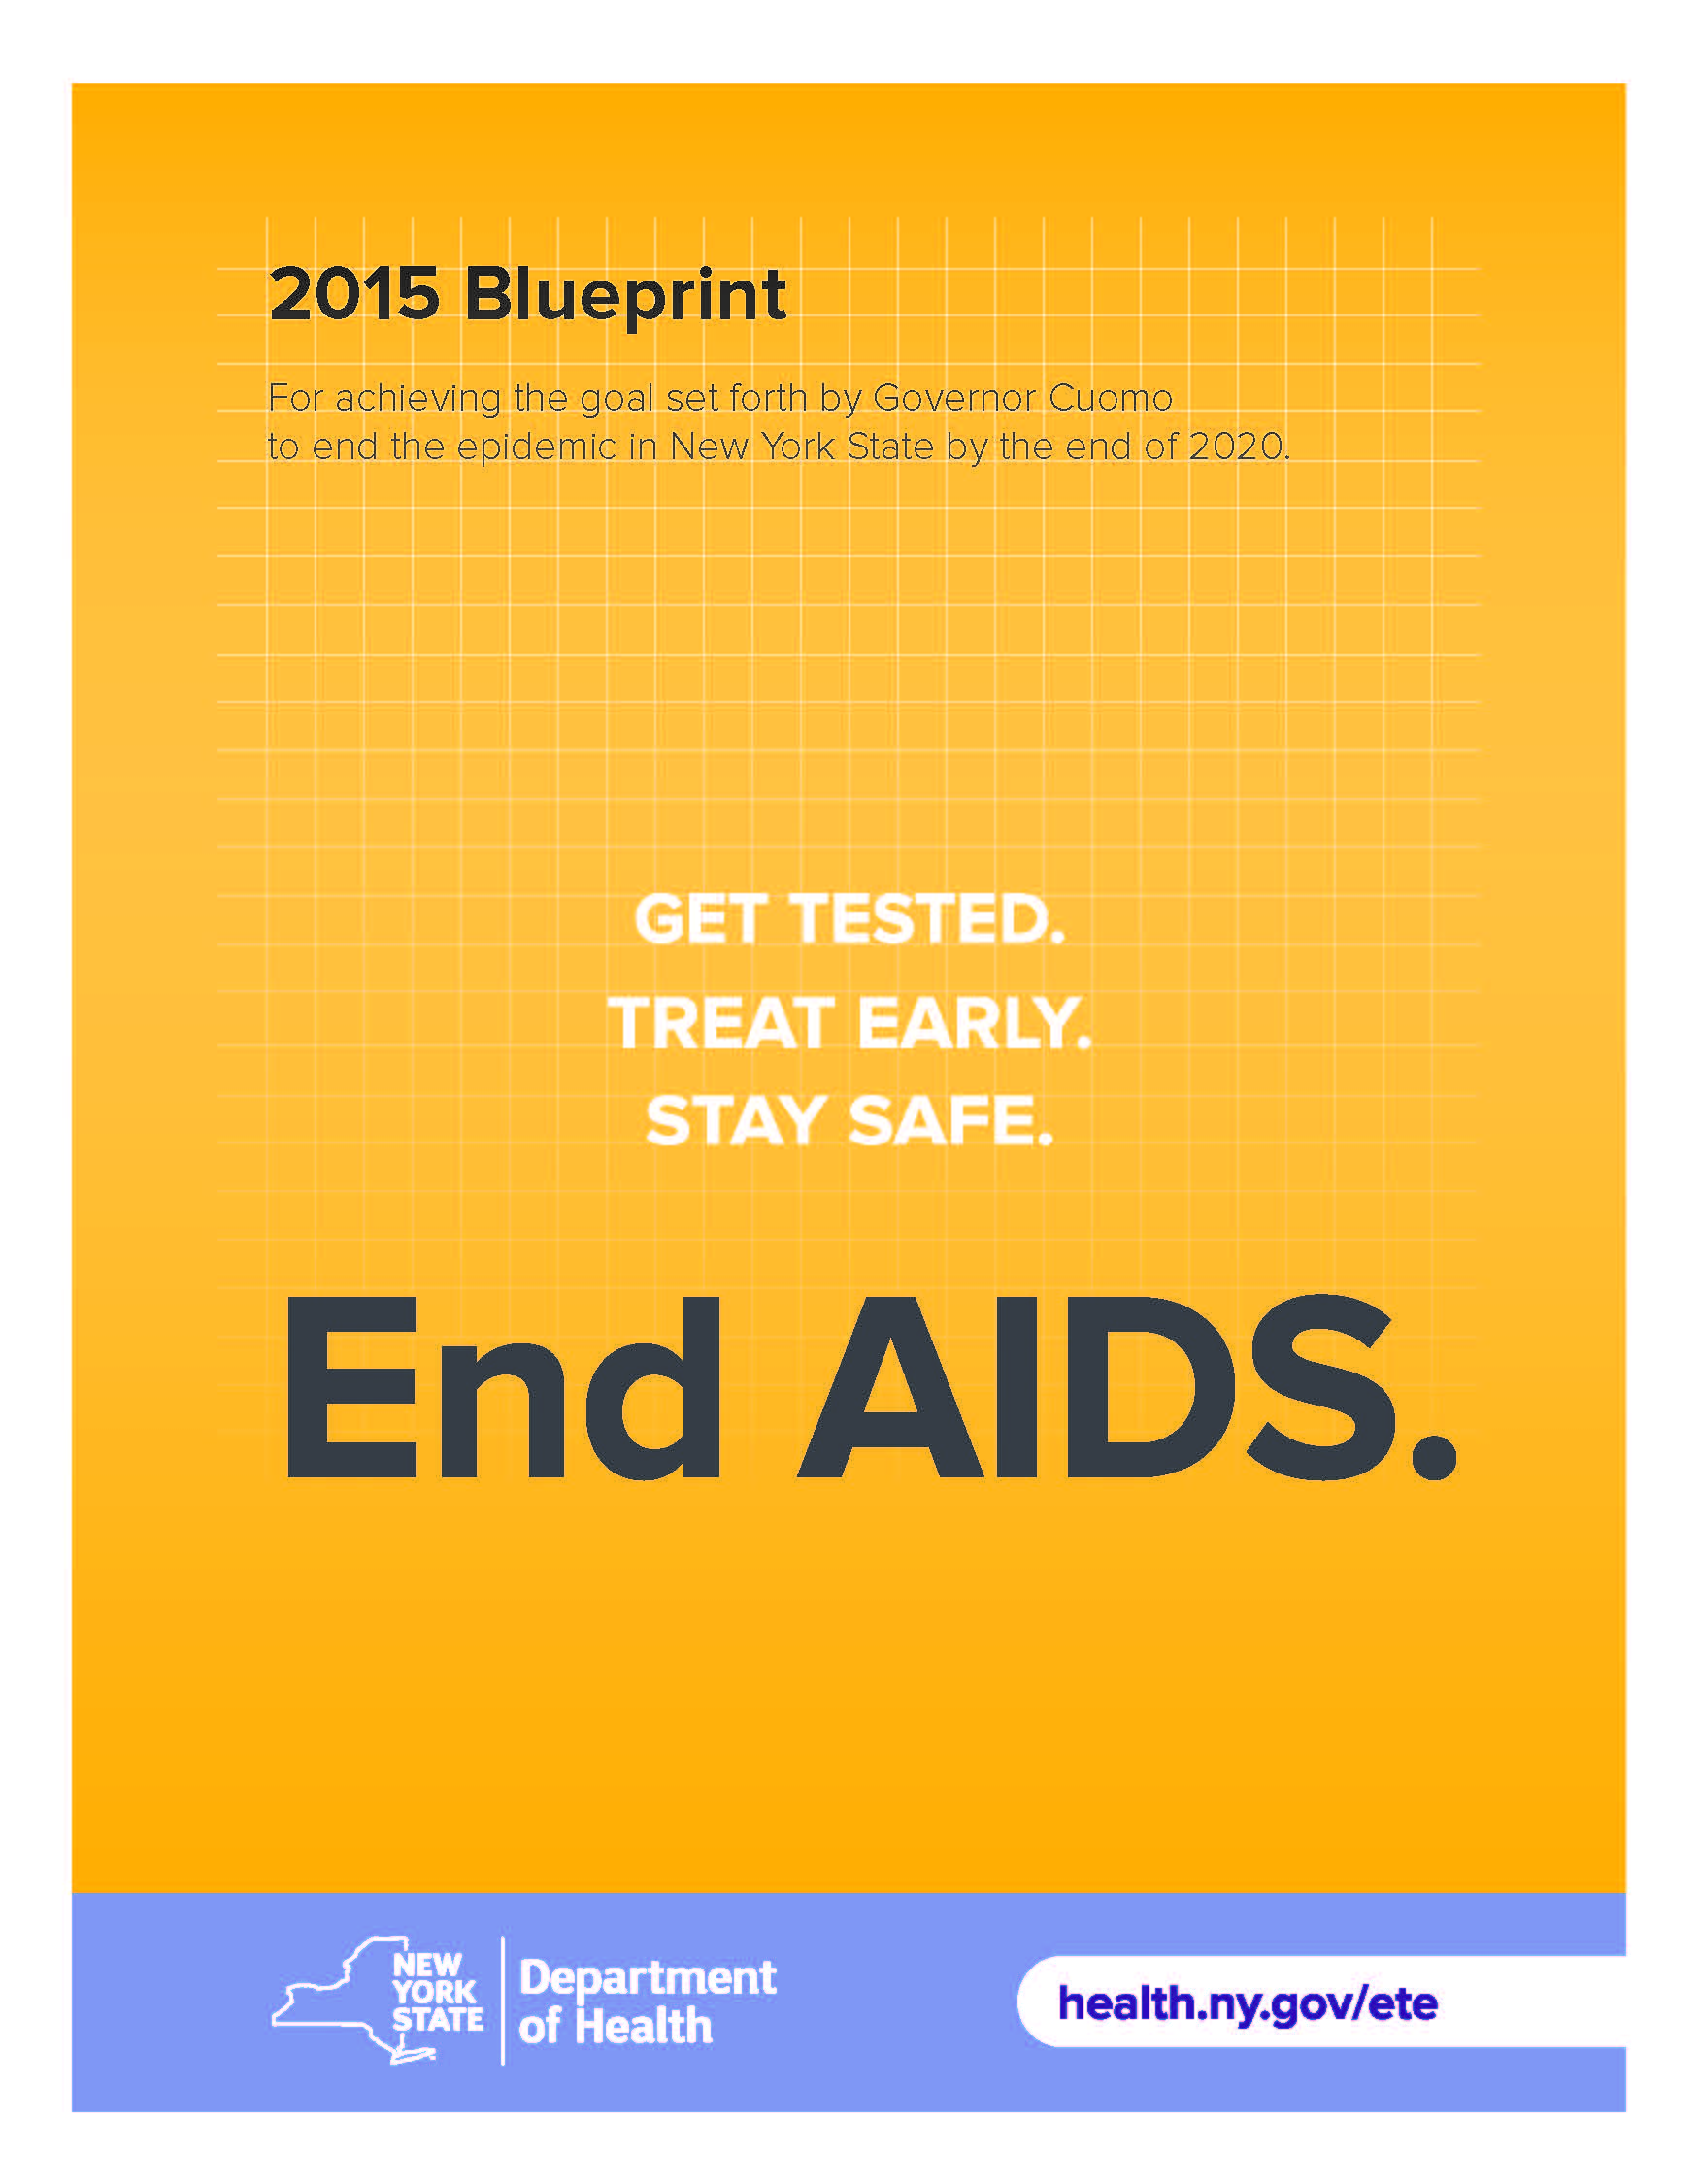 Nblca blog archive 2015 blueprint end aids for achieving the goal set forth by governor cuomo to end the epidemic in new york state by the end of 2020 malvernweather Gallery